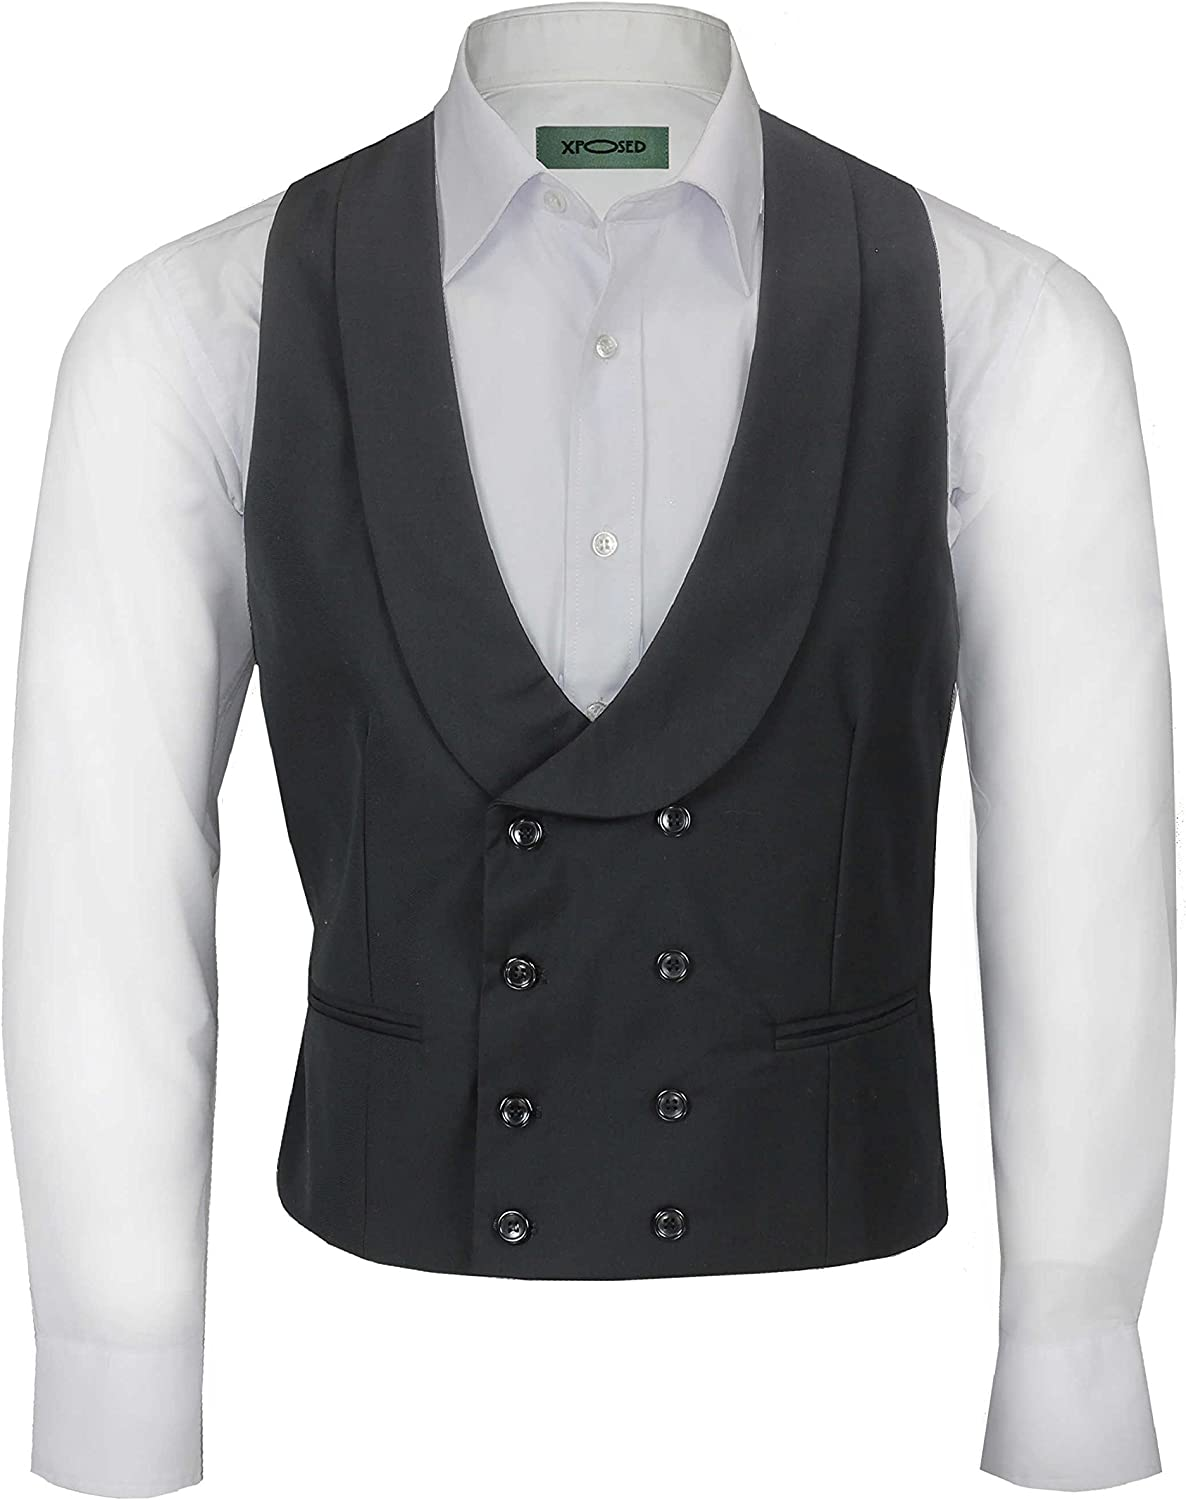 1920s Style Mens Vests Xposed Men's Vintage Double Breasted Shawl Lapel Waistcoat Tailored Fit Smart Wedding Dress Tux Vest £31.99 AT vintagedancer.com